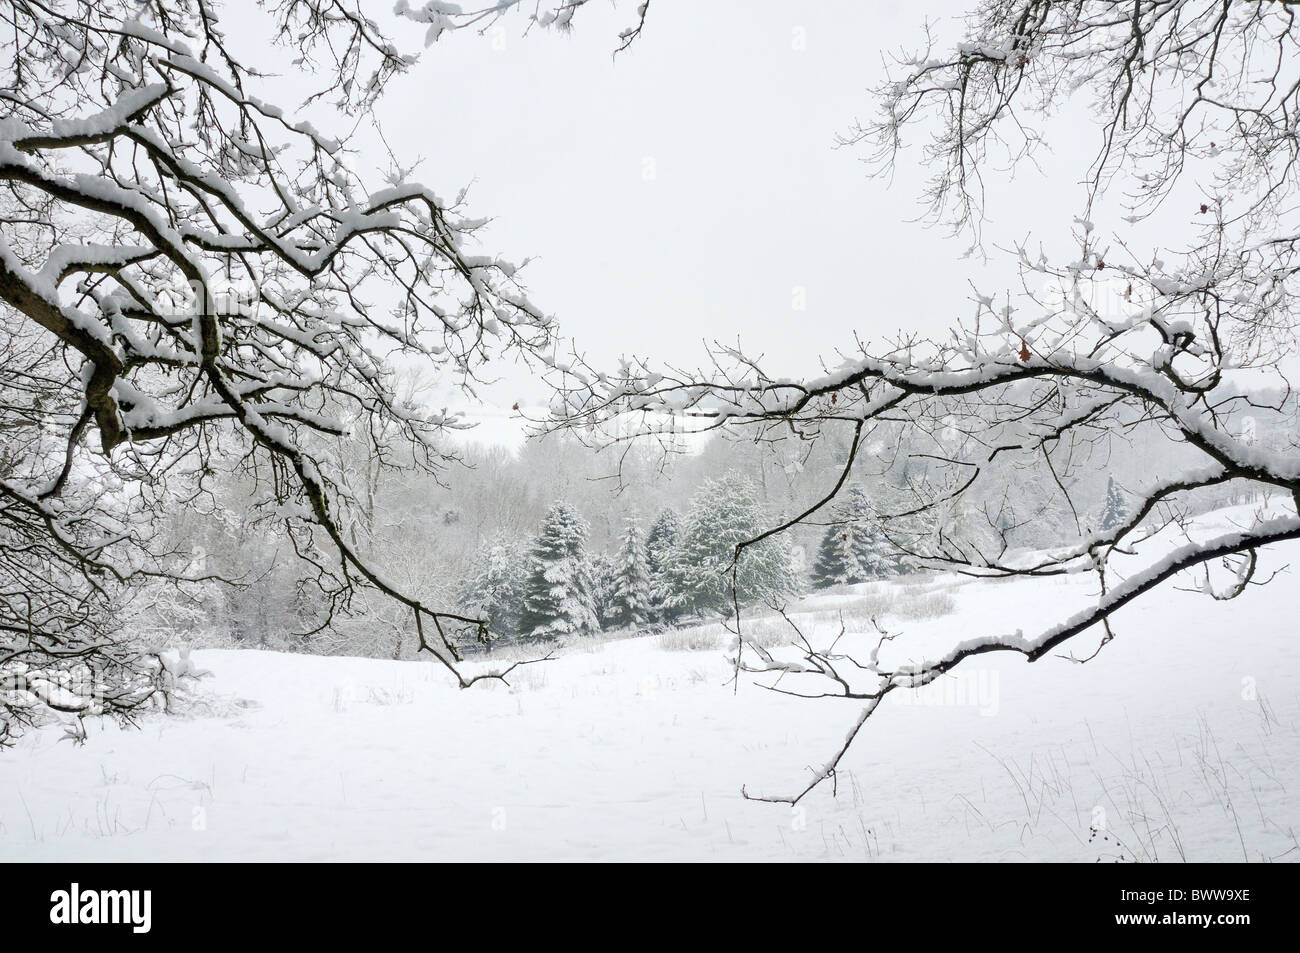 Snow covered trees and pastureland. Wiltshire, UK, January 2010. - Stock Image